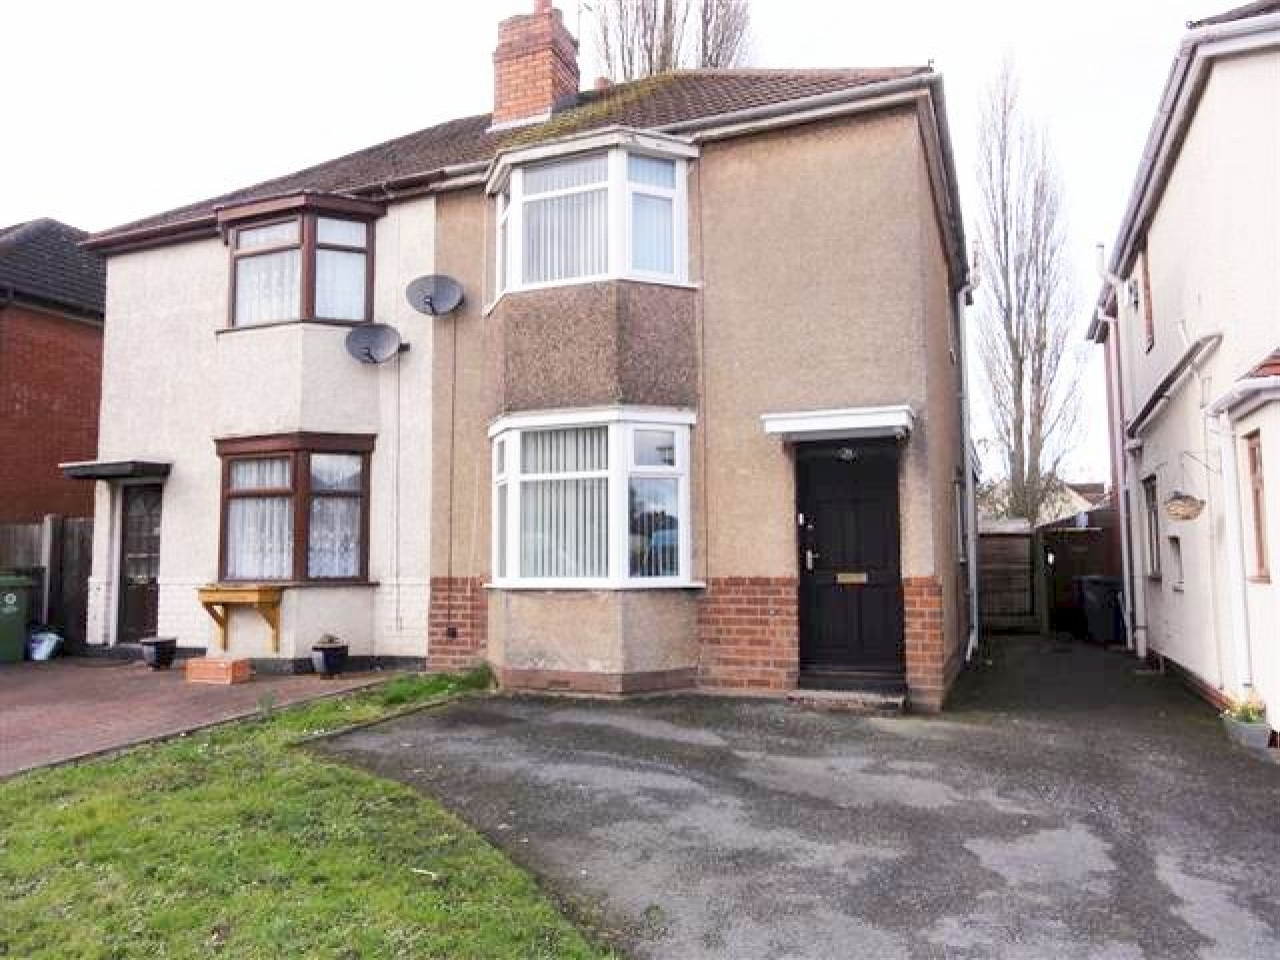 3 Bedroom Semi-detached House To Rent - Photograph 1